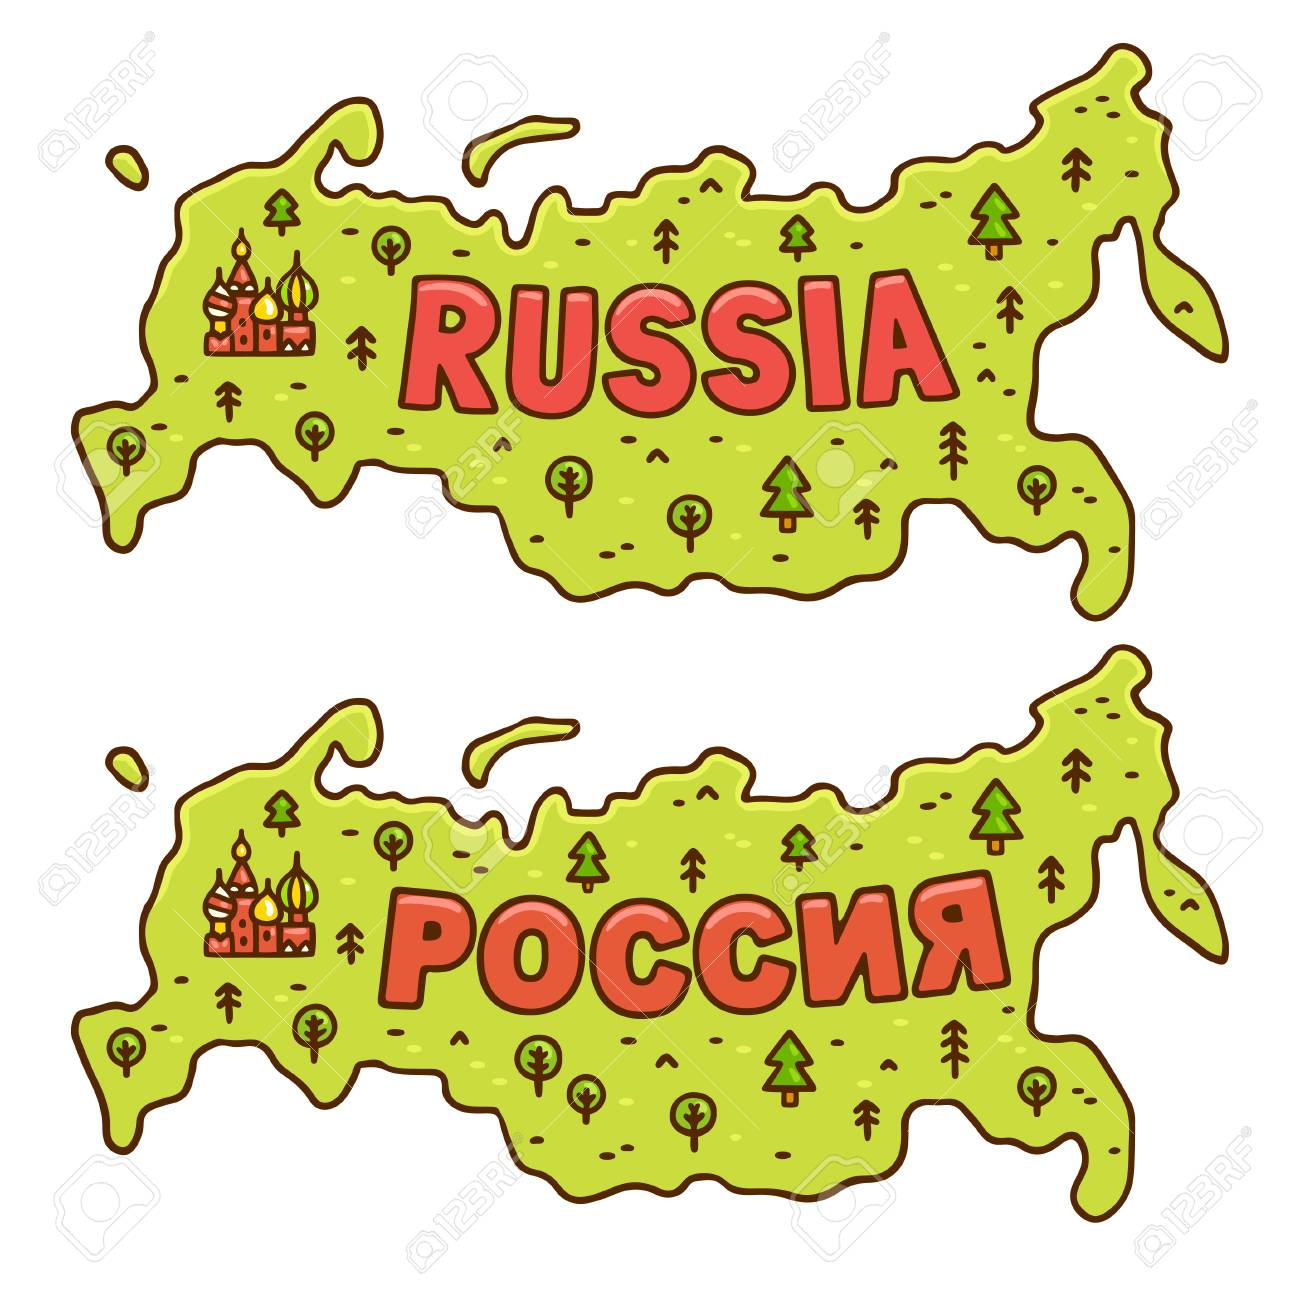 Map Of Russia In Russian.Cute Cartoon Map Of Russia With Country Name Written In Russian